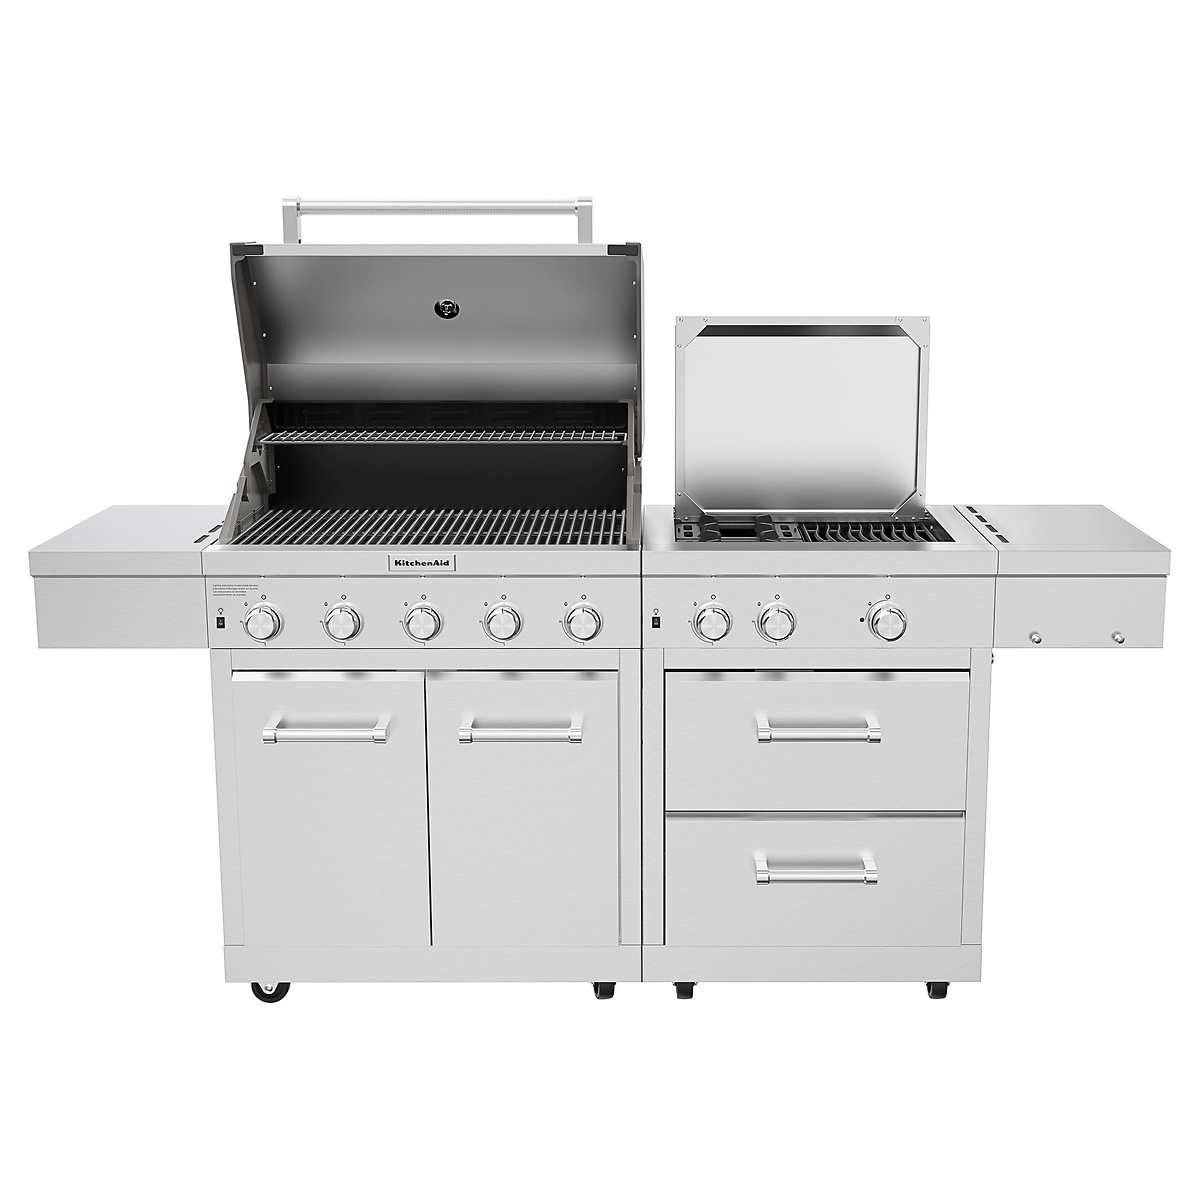 Kitchenaid Stainless Steel 8 Burner Grill